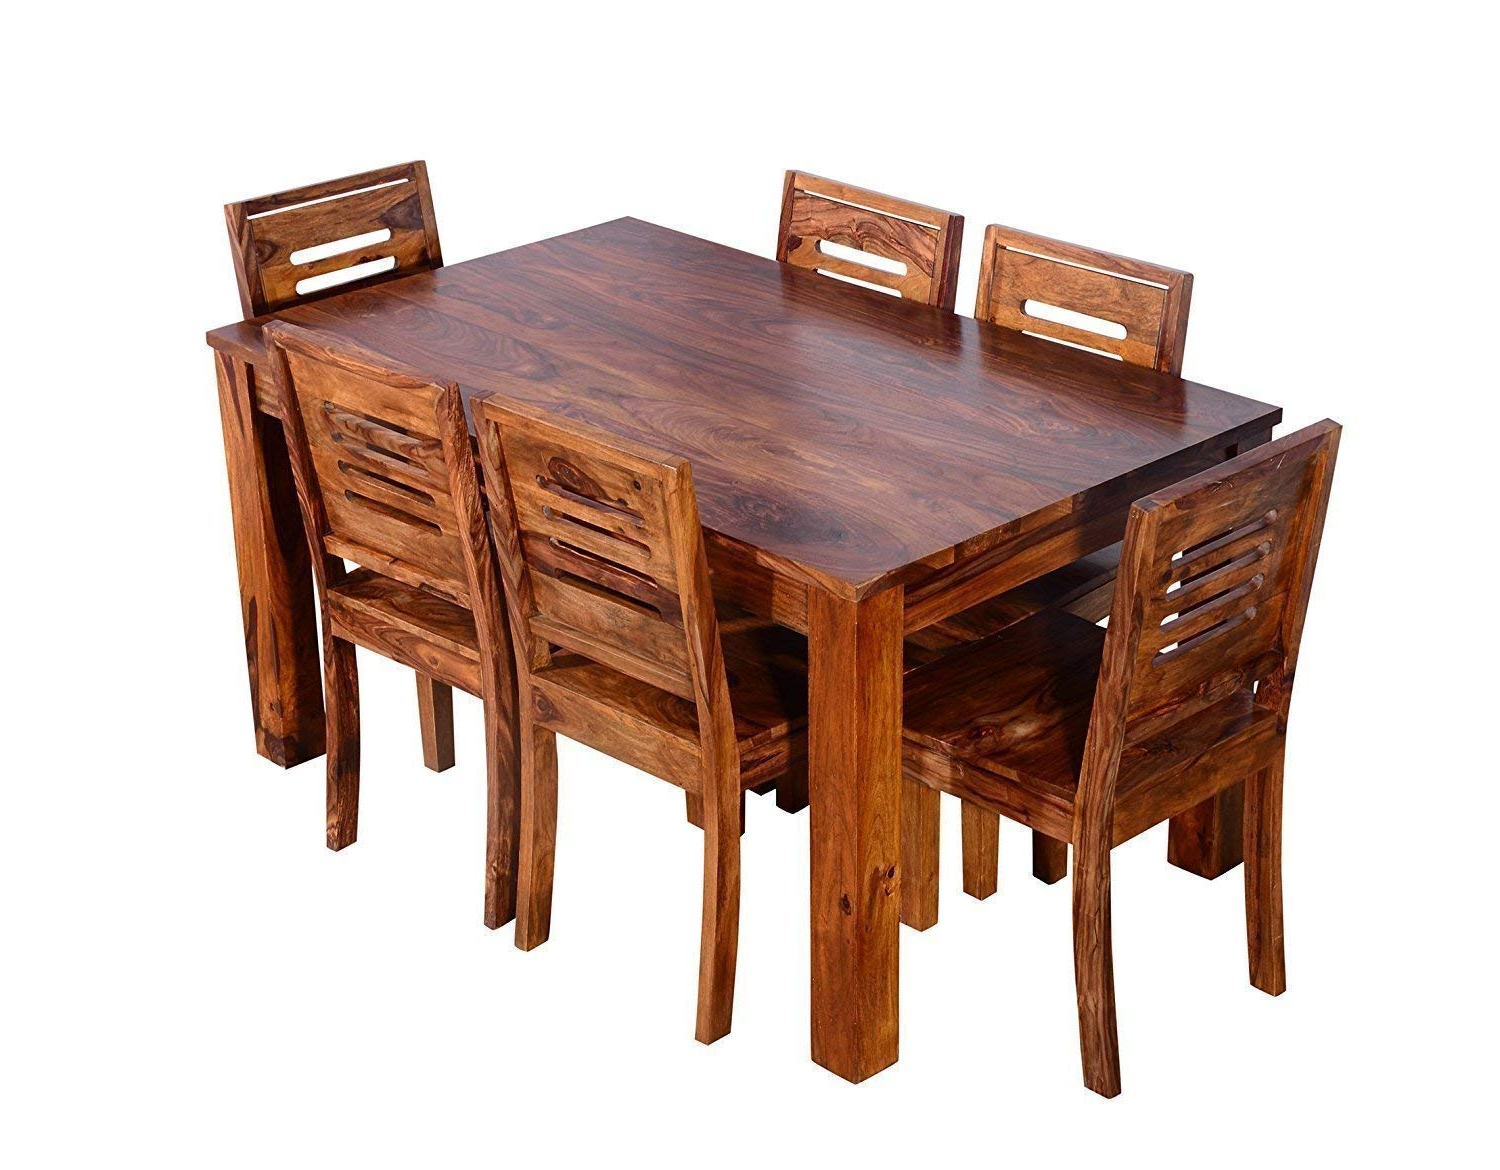 Furniture Flip Sheesham Wood 6 Seater Dining Table With Chairs For Home And  Living Room In Famous 6 Seater Retangular Wood Contemporary Dining Tables (View 11 of 25)